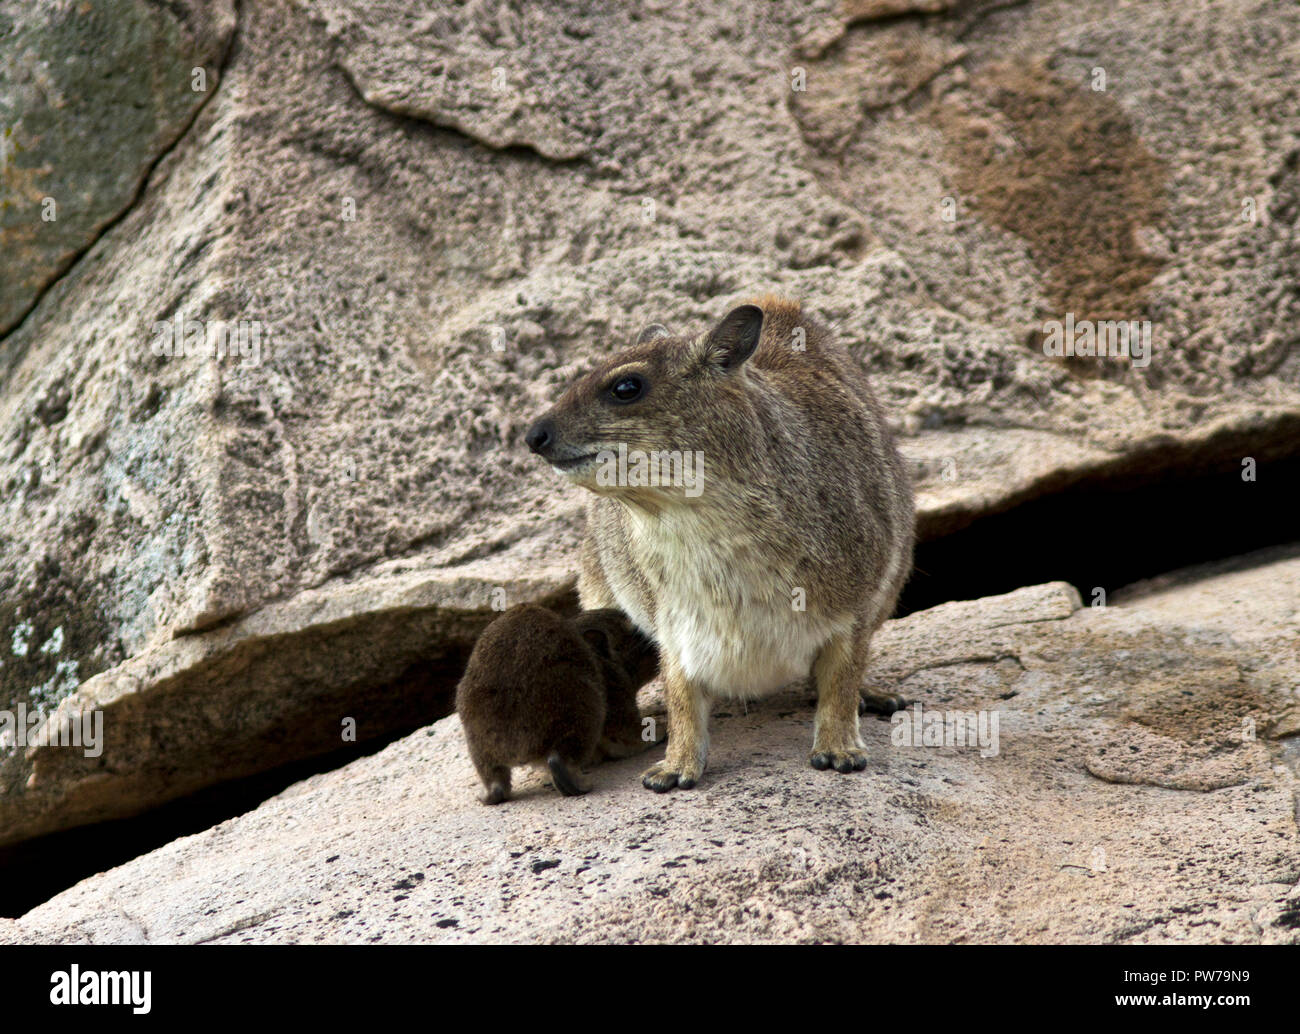 The Hyrax has two pairs of mammary glands and like their relative, the elephant, they have a pectoral pair. - Stock Image